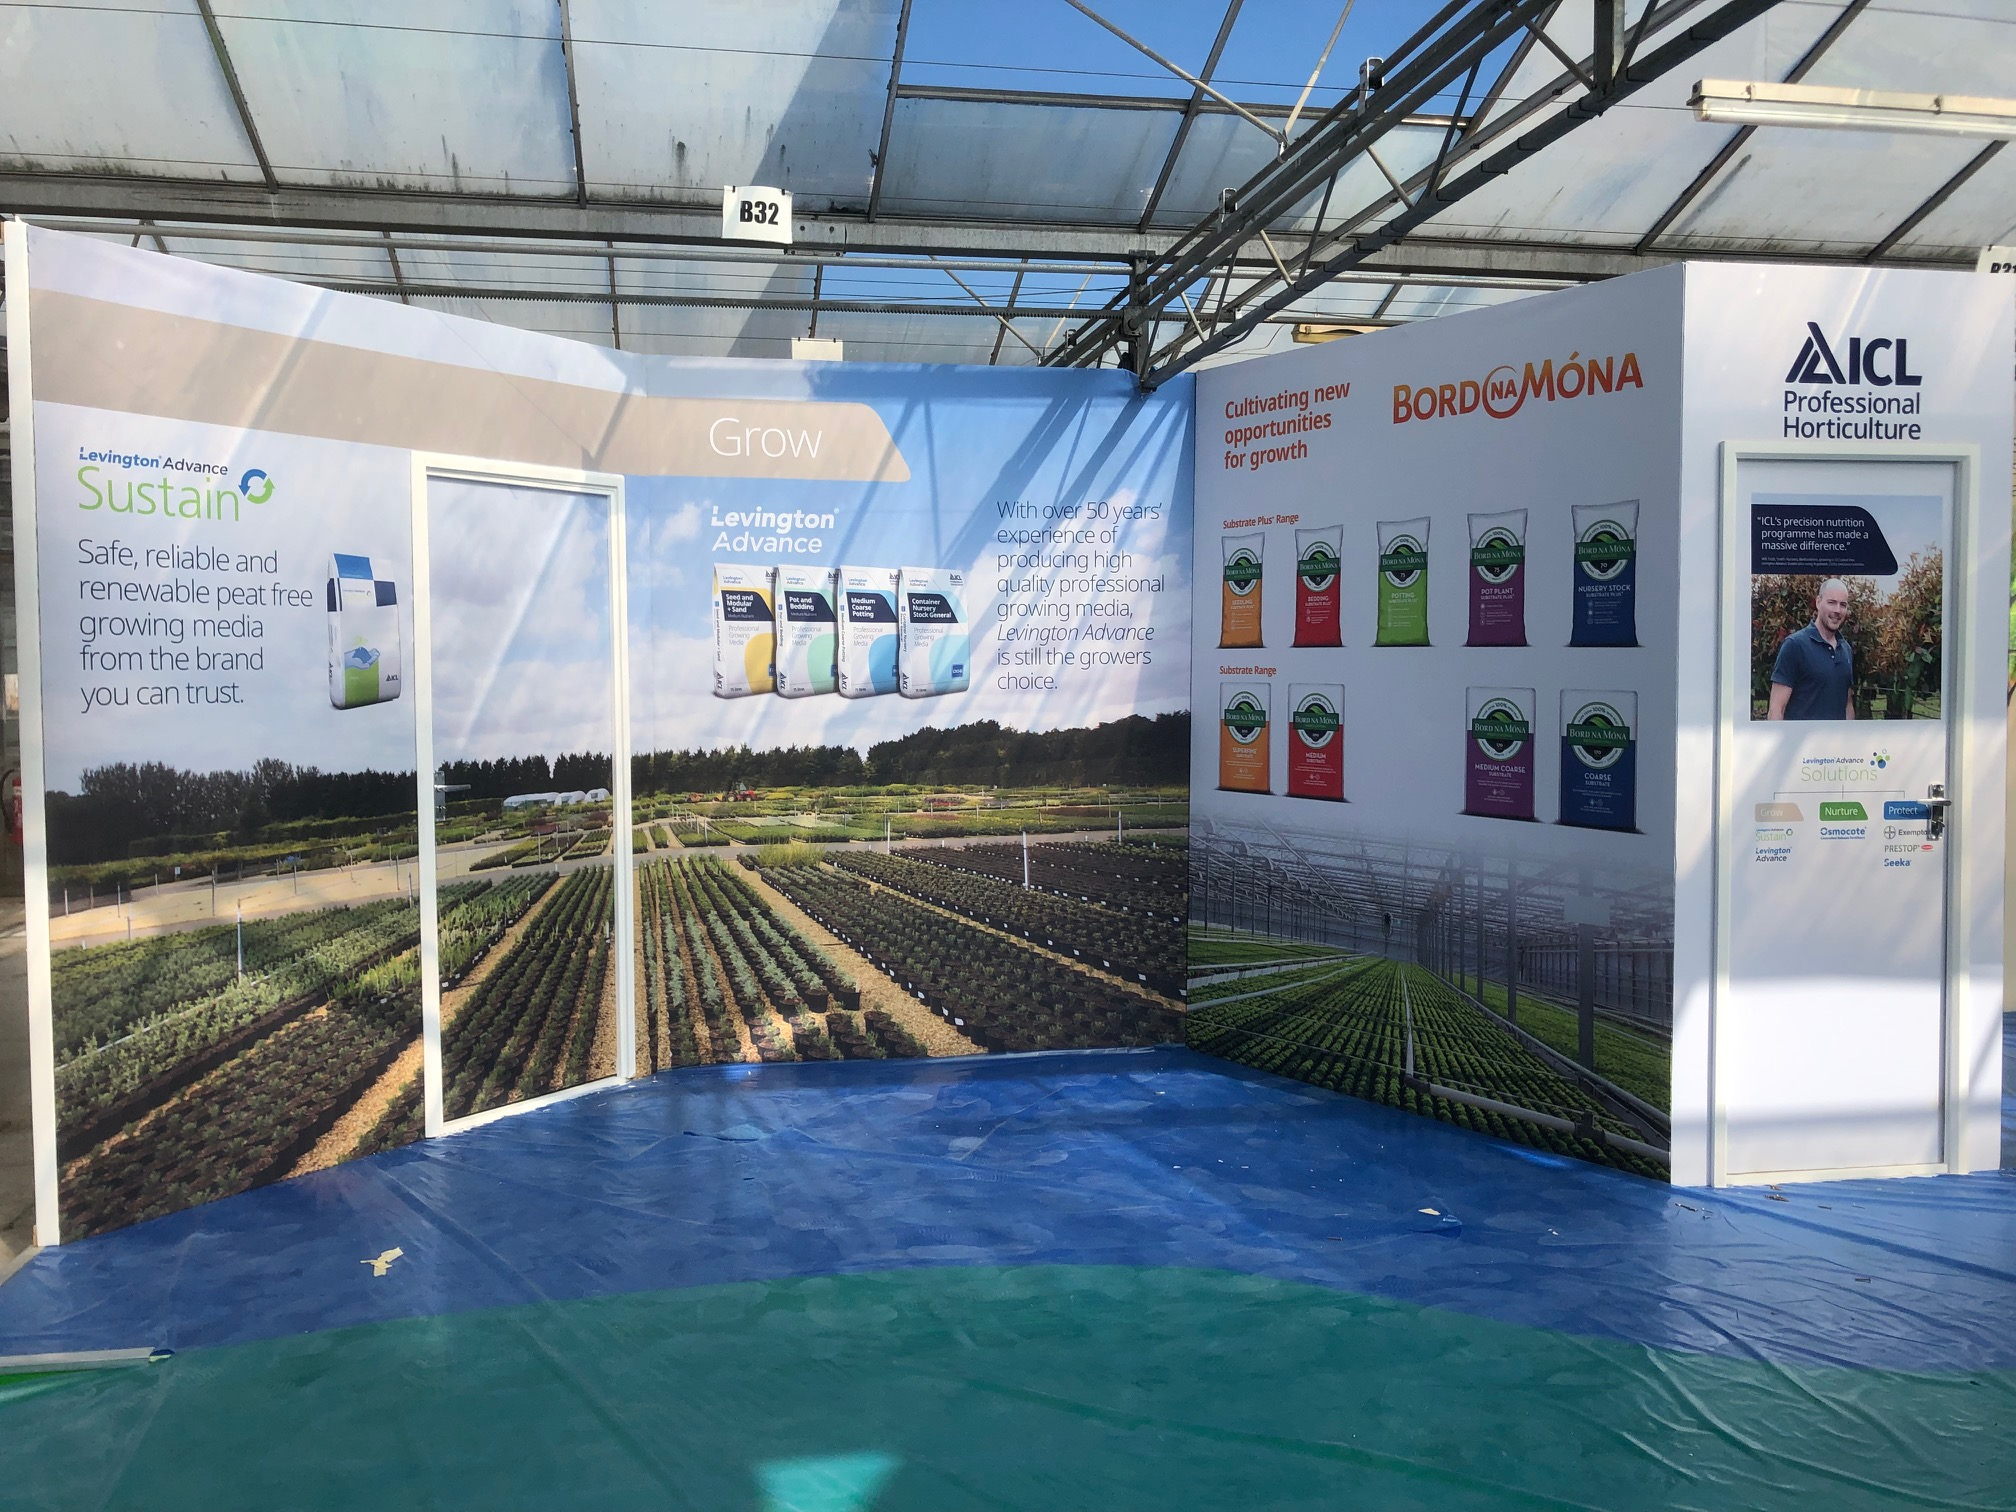 ICL Specialty Fertilizers at the Four Oaks Exhibition – Case Study